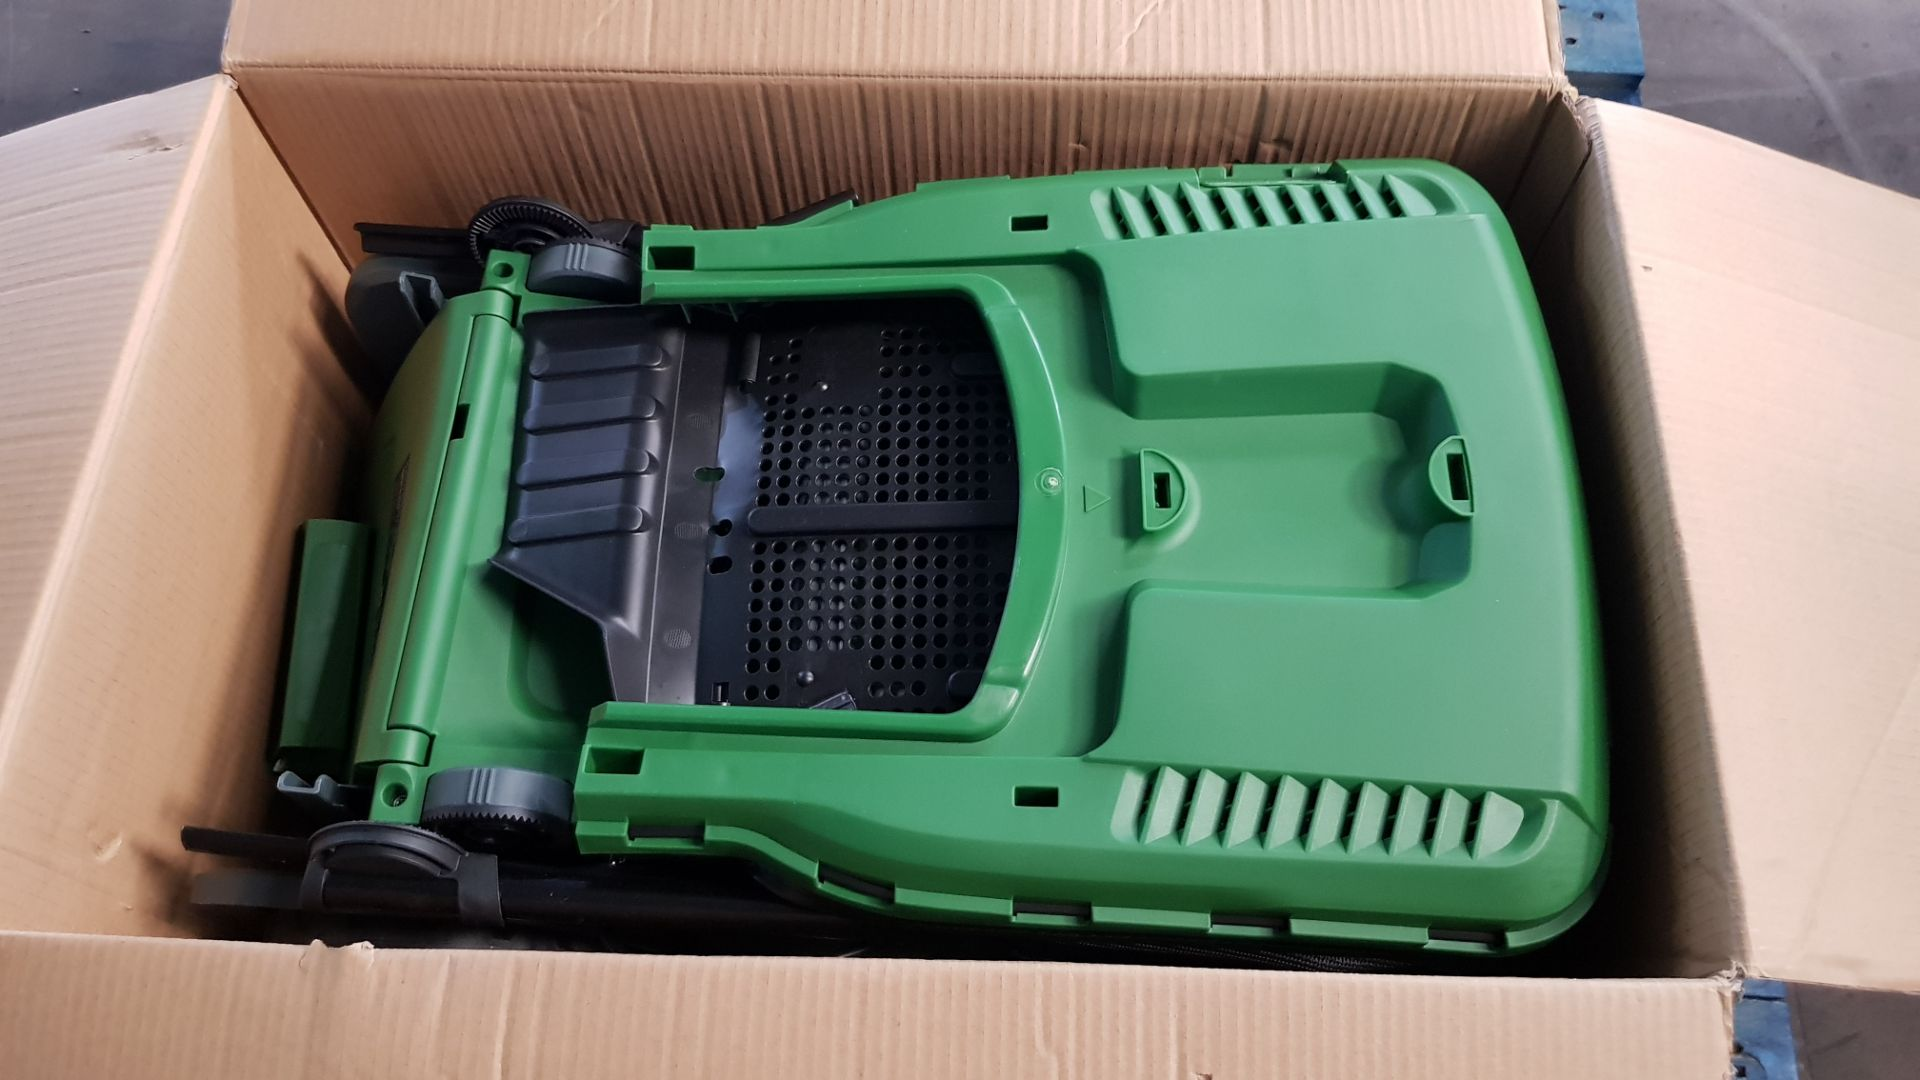 (P8) 1x Powerbase 41cm 1800W Electric Rotary Lawn Mower RRP £119. Contents Appear As New – Clean, - Image 4 of 5